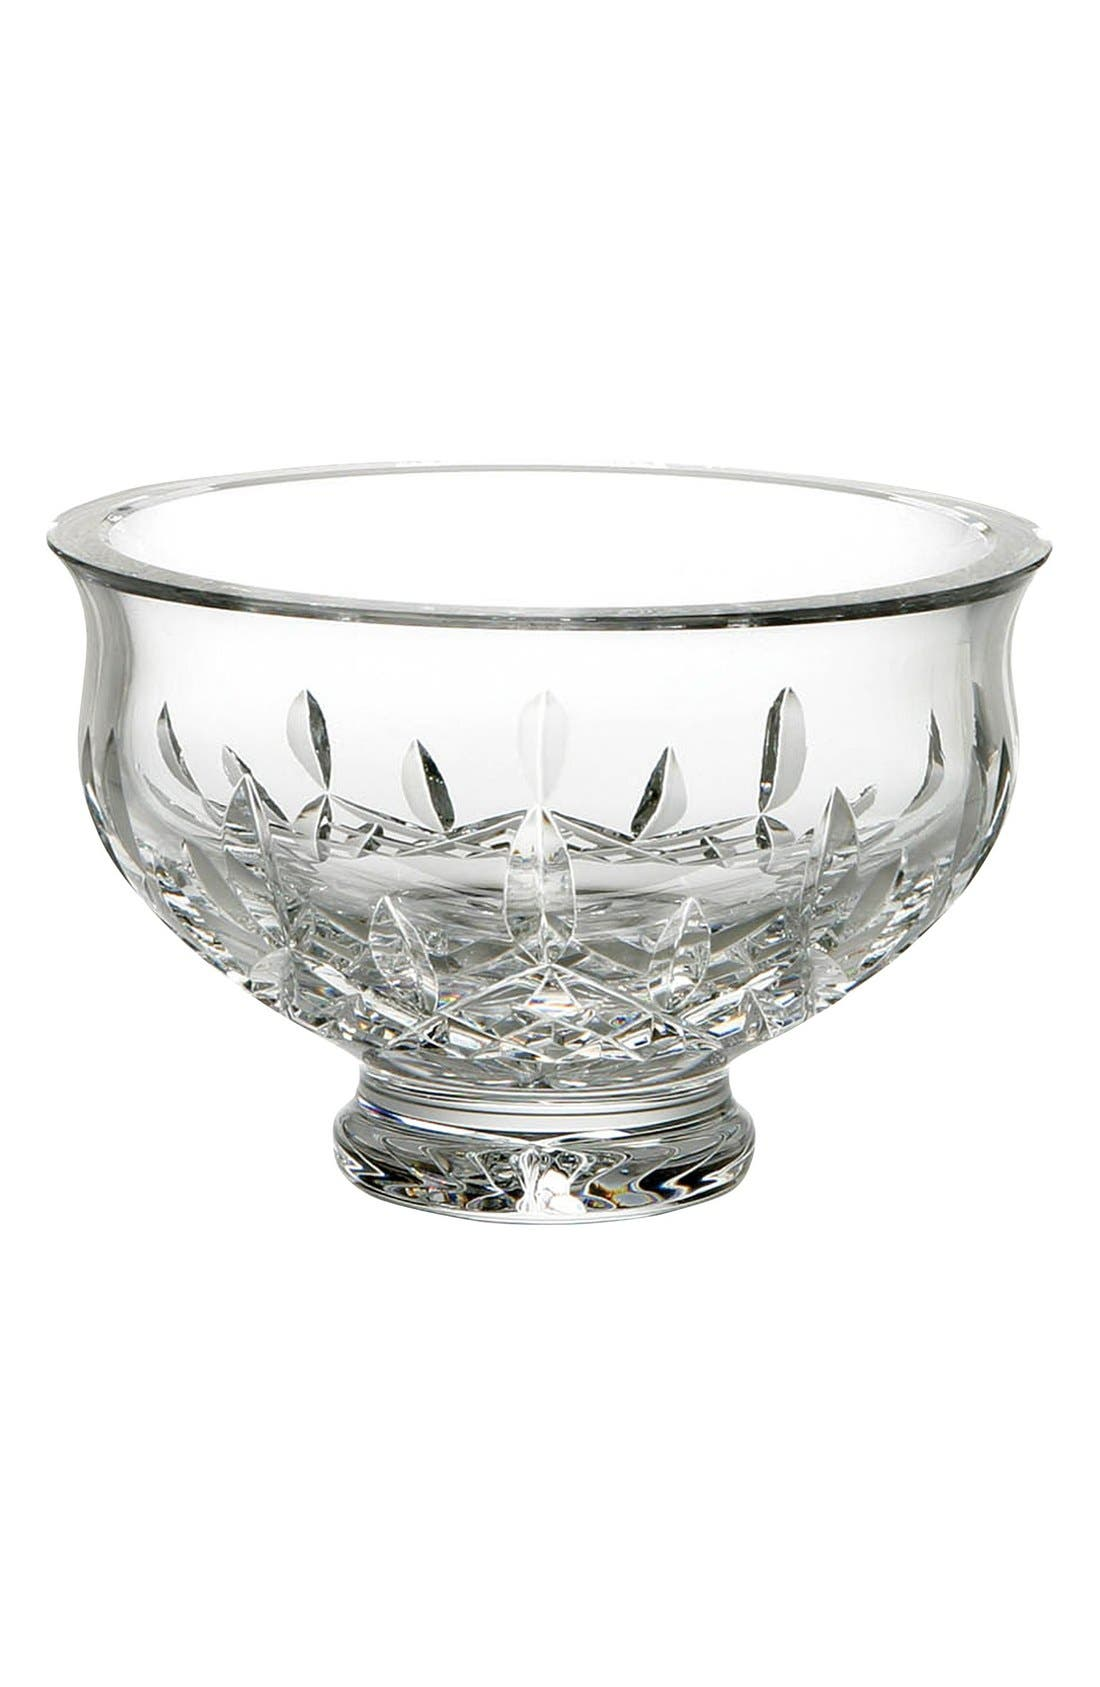 Waterford 'Lismore' Lead Crystal Footed Bowl